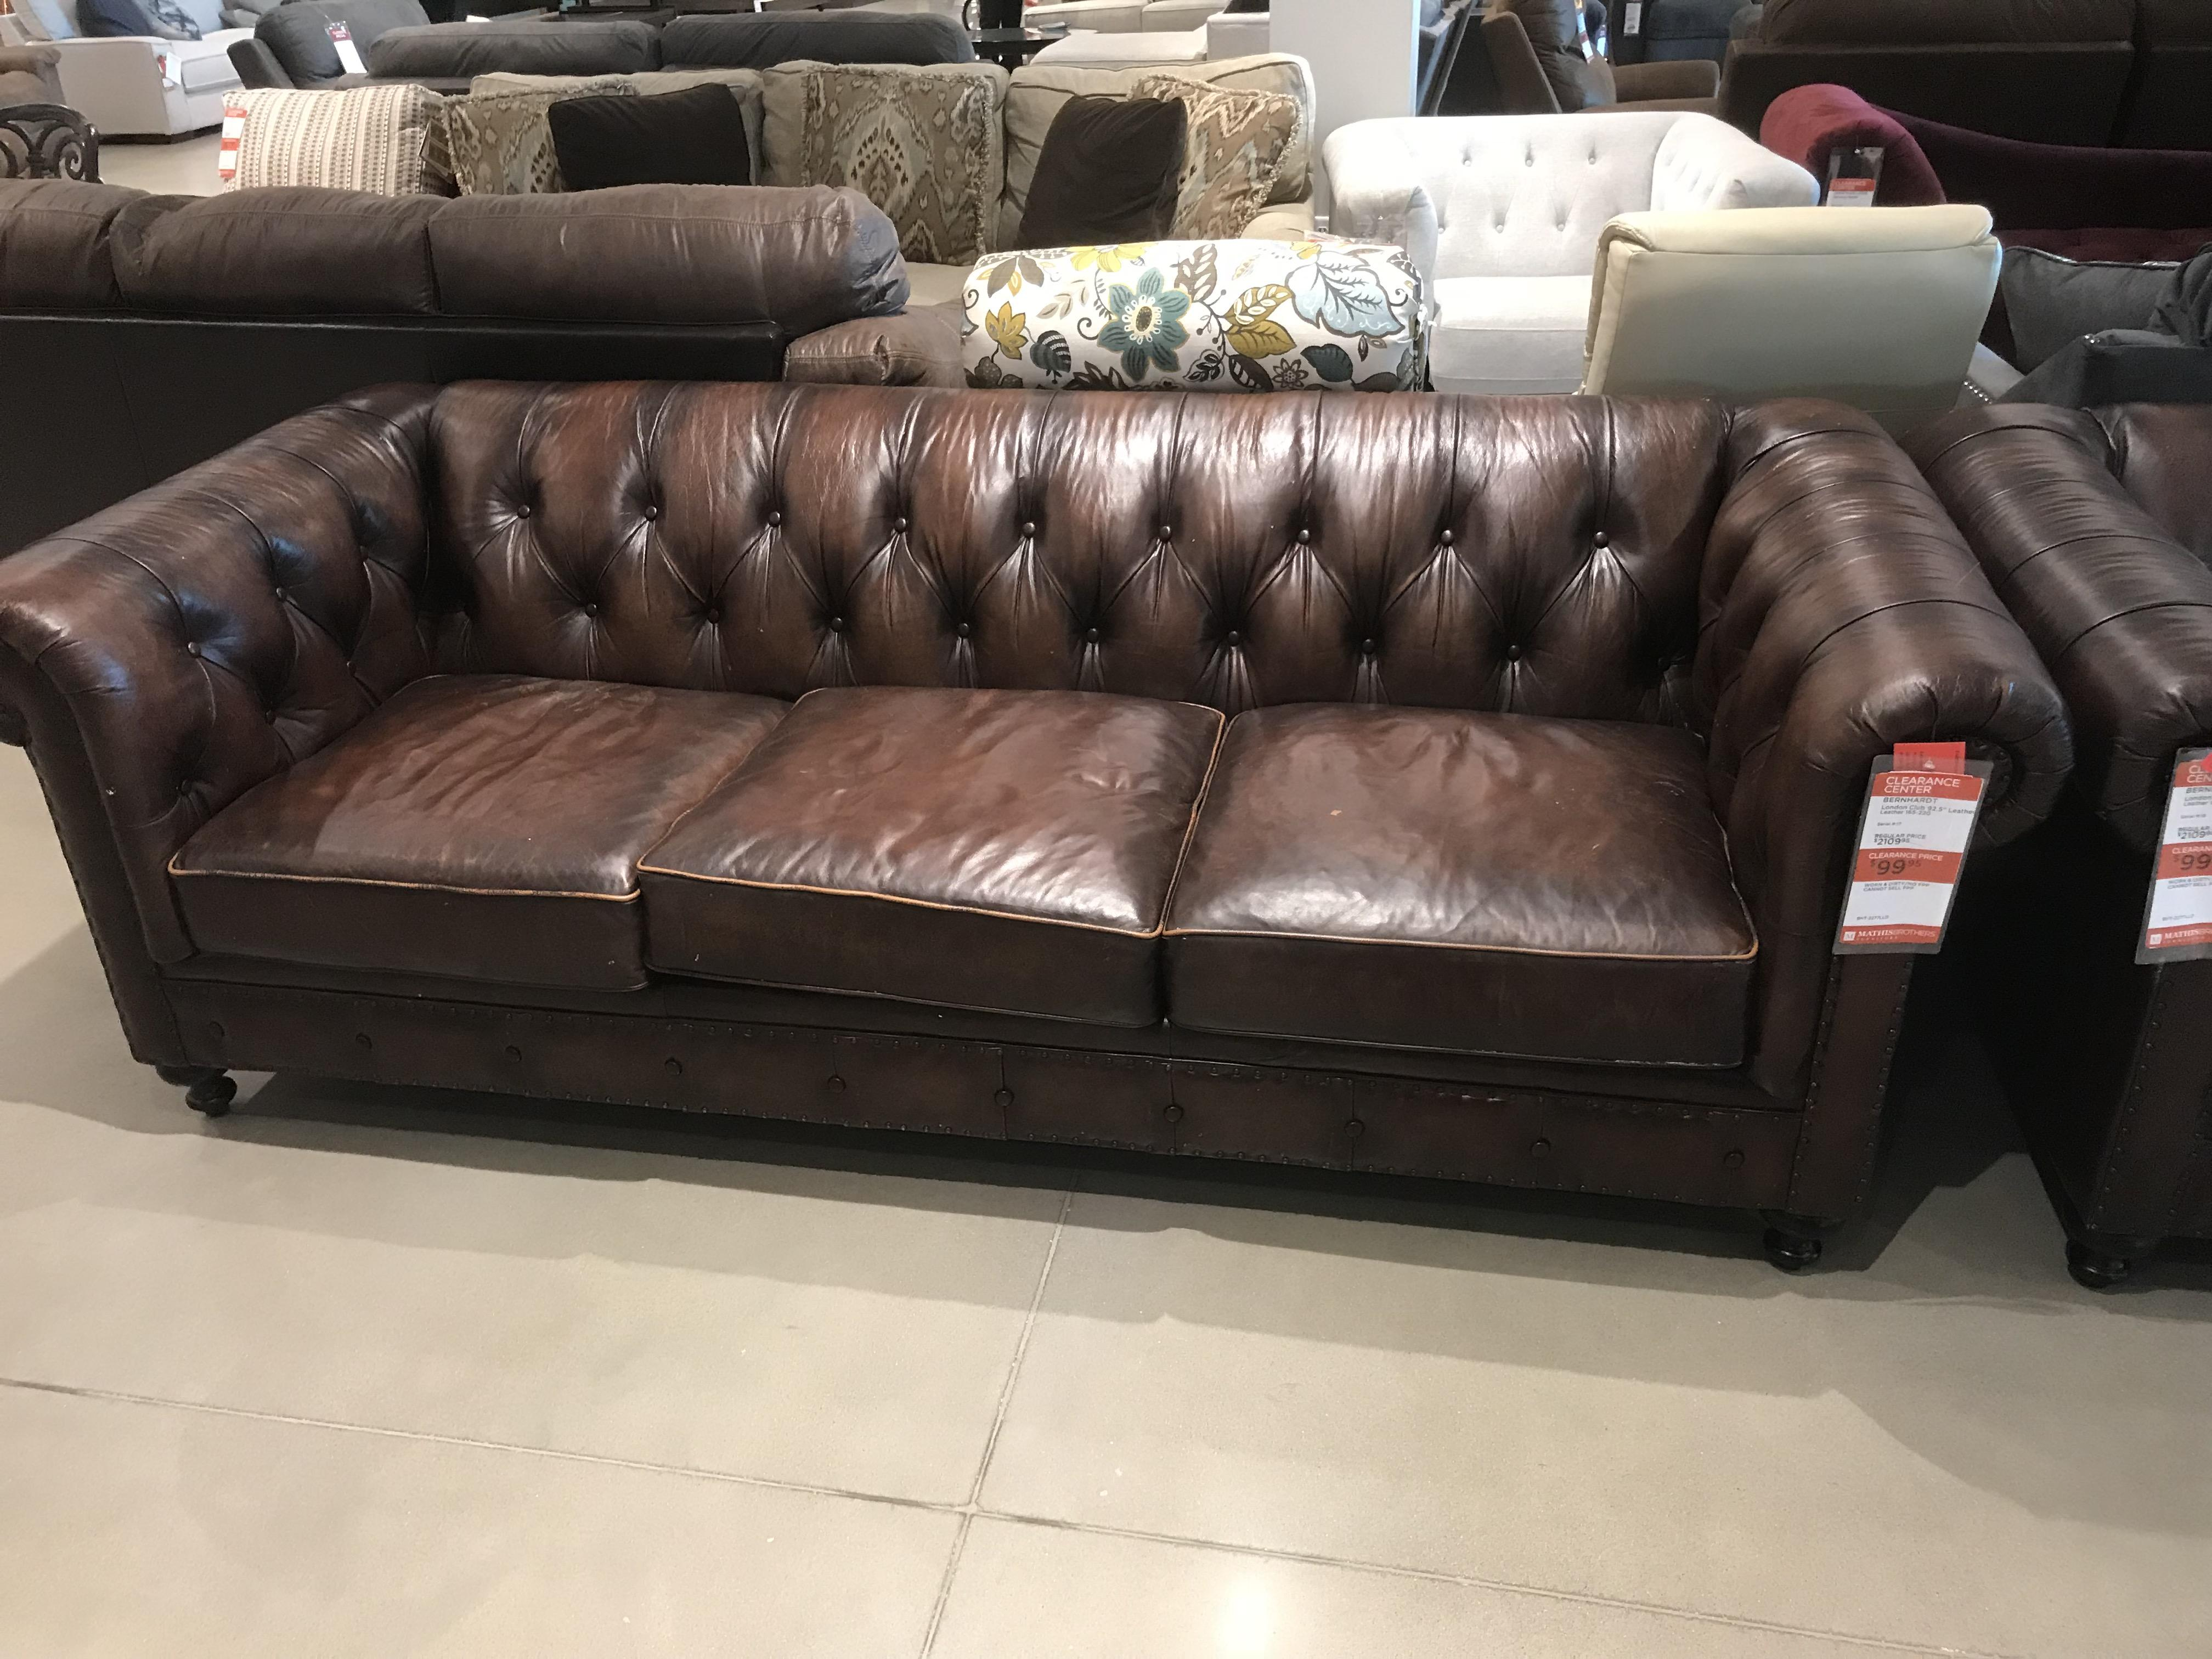 Sofa Couch Reddit 2 Bernhardt Leather Chesterfield Sofas 99 Each I Was Late And